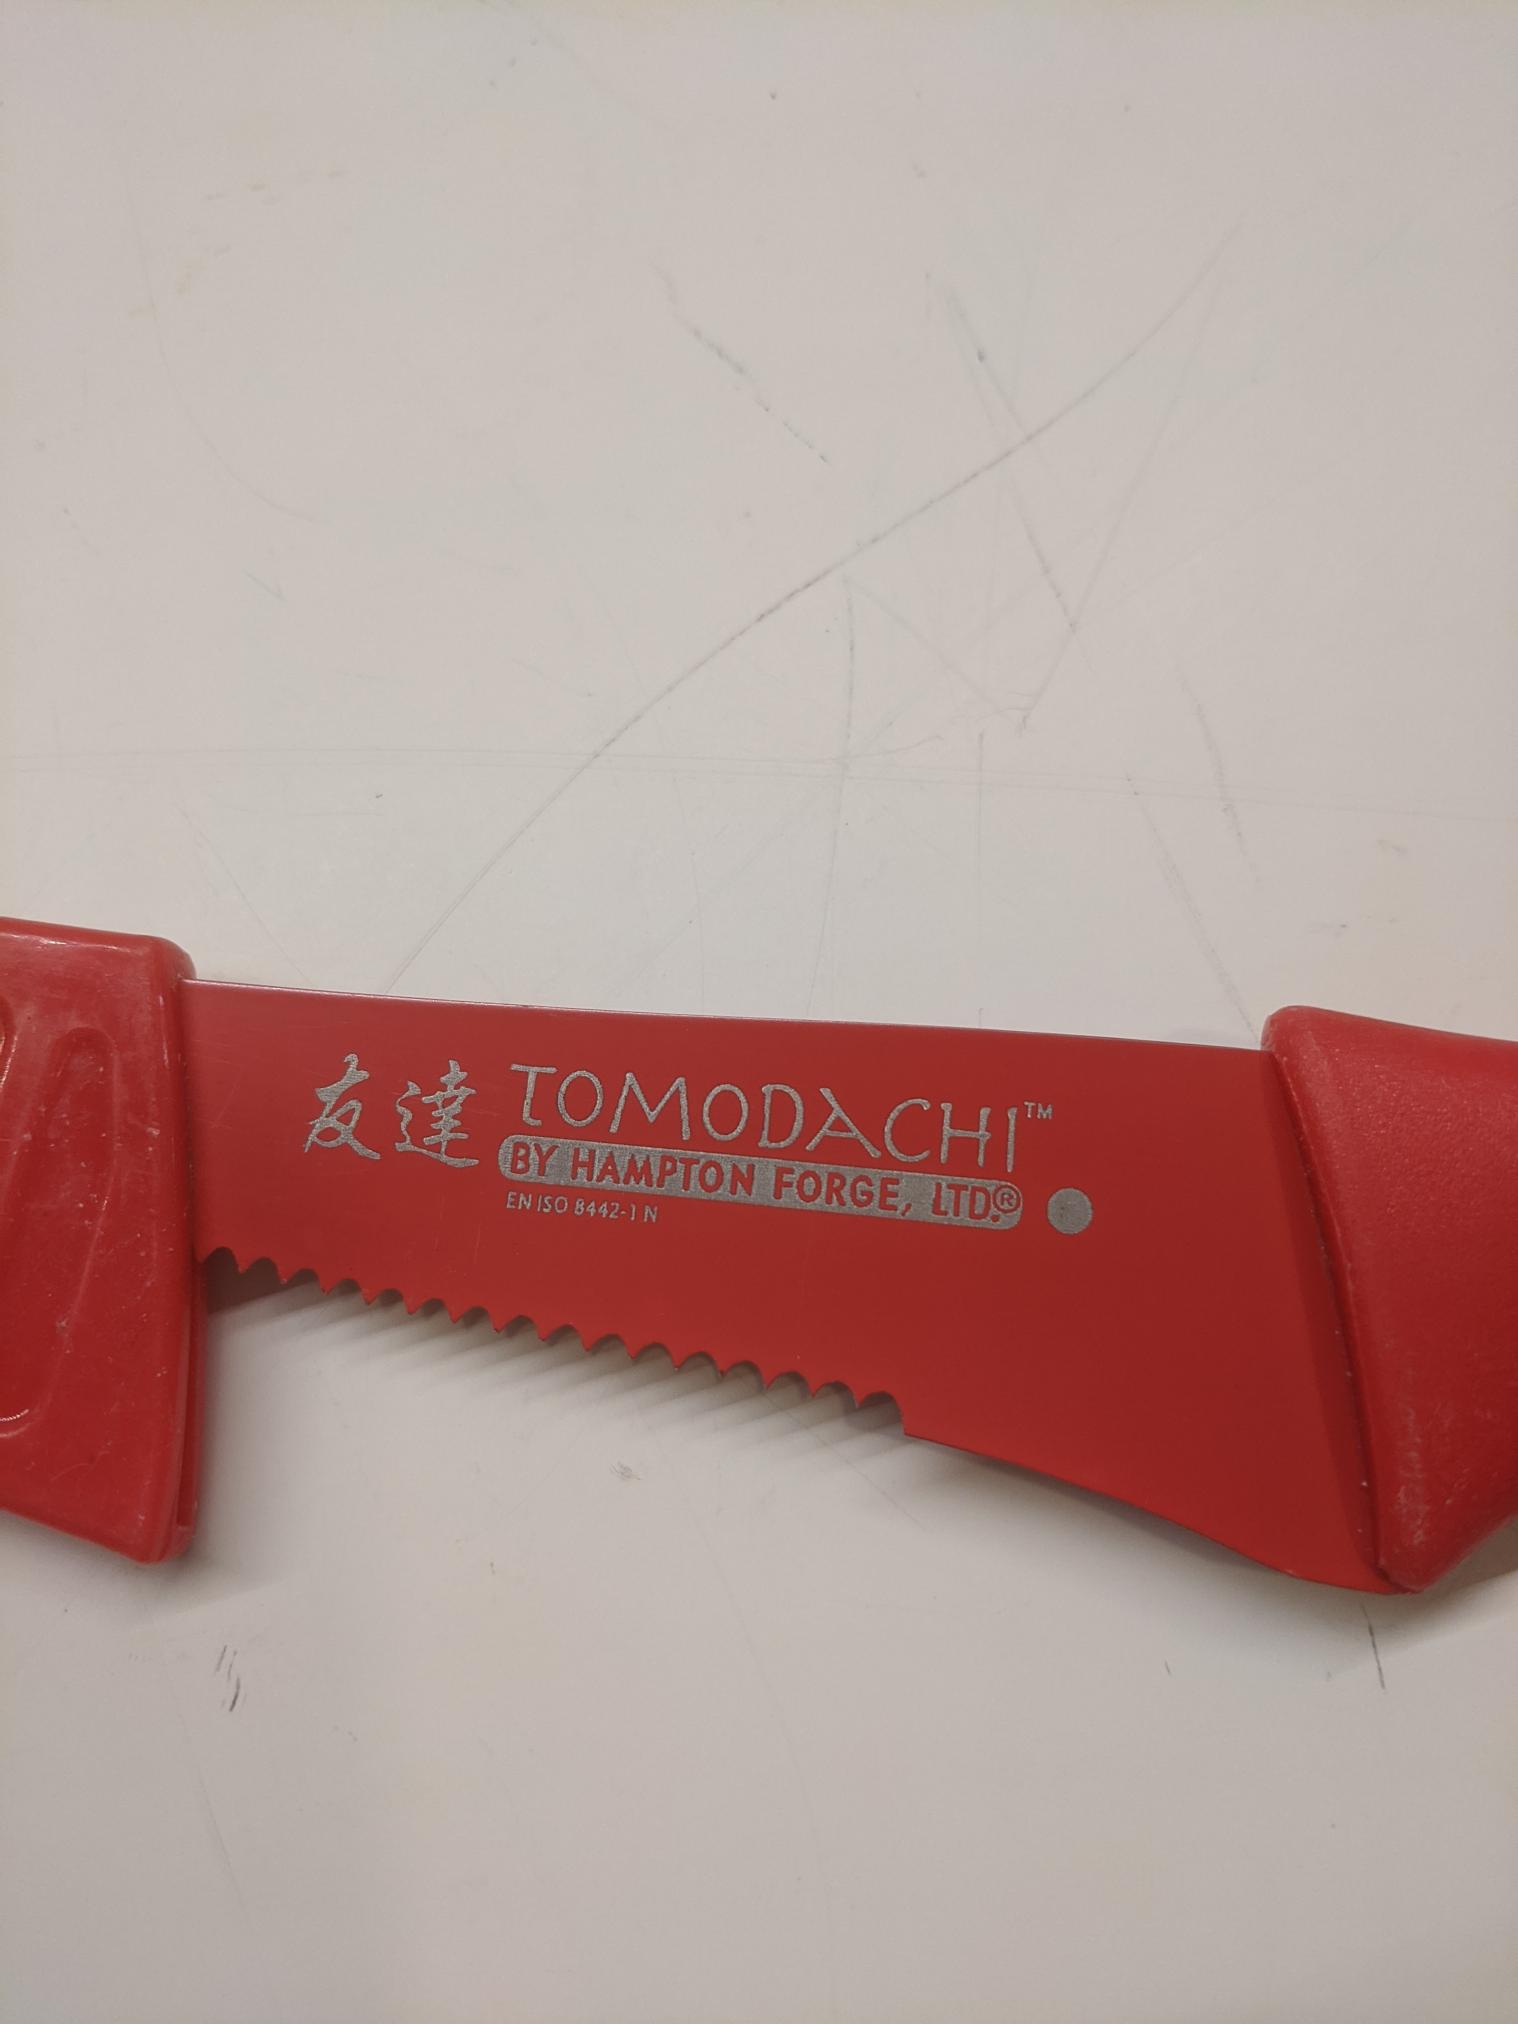 Tomodachi Tomato Knife